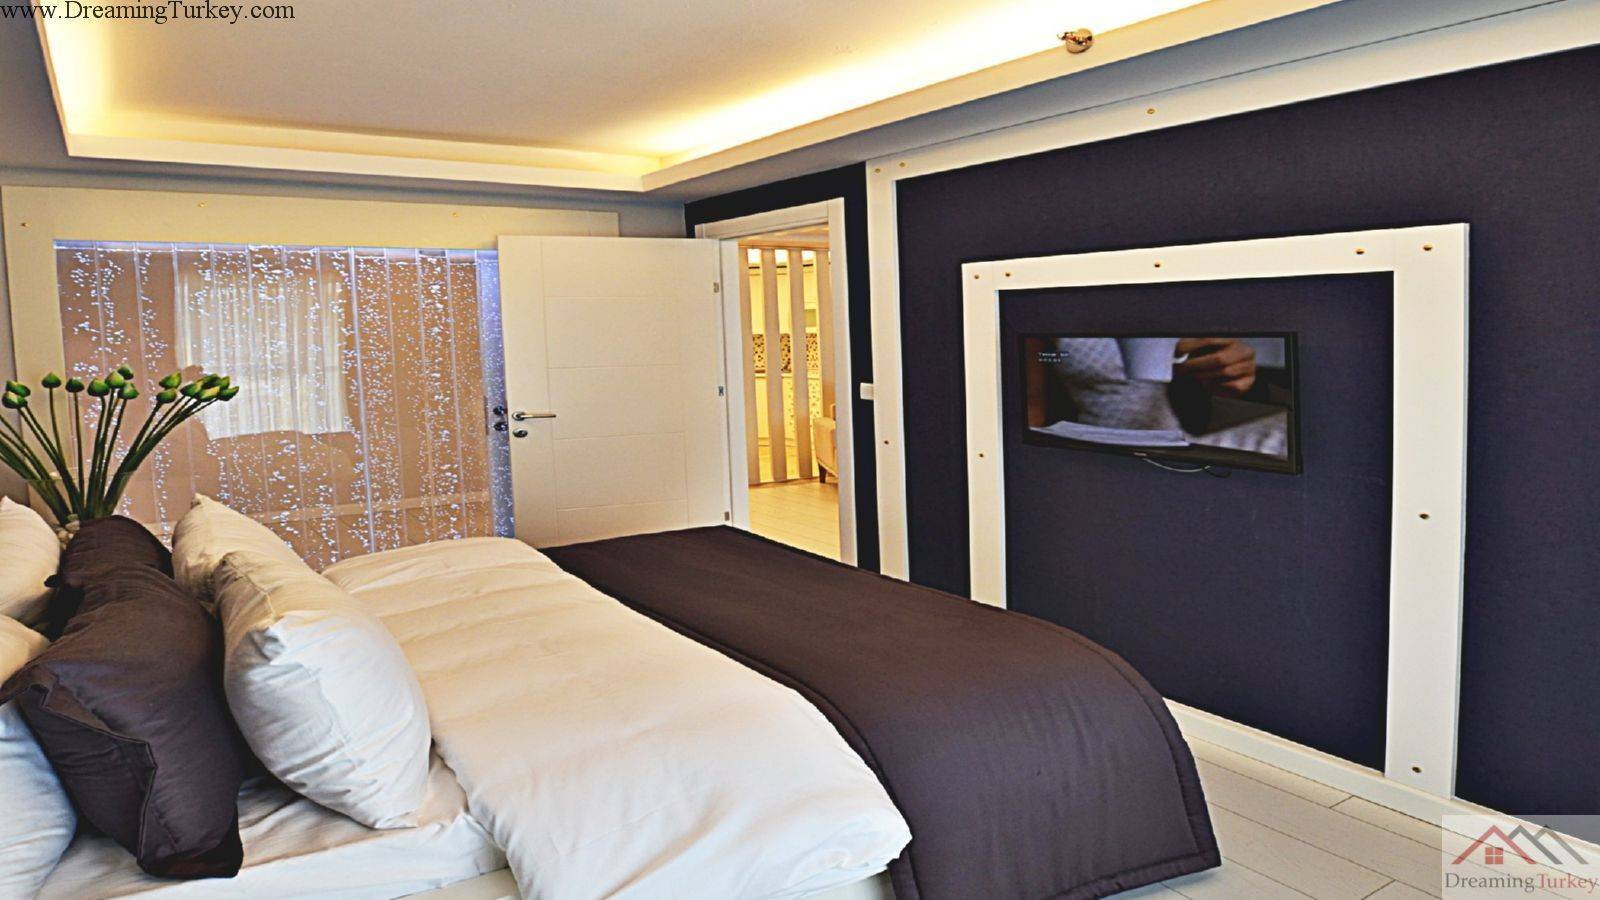 2-Bedroom Apartment inside a Complex in Istanbul